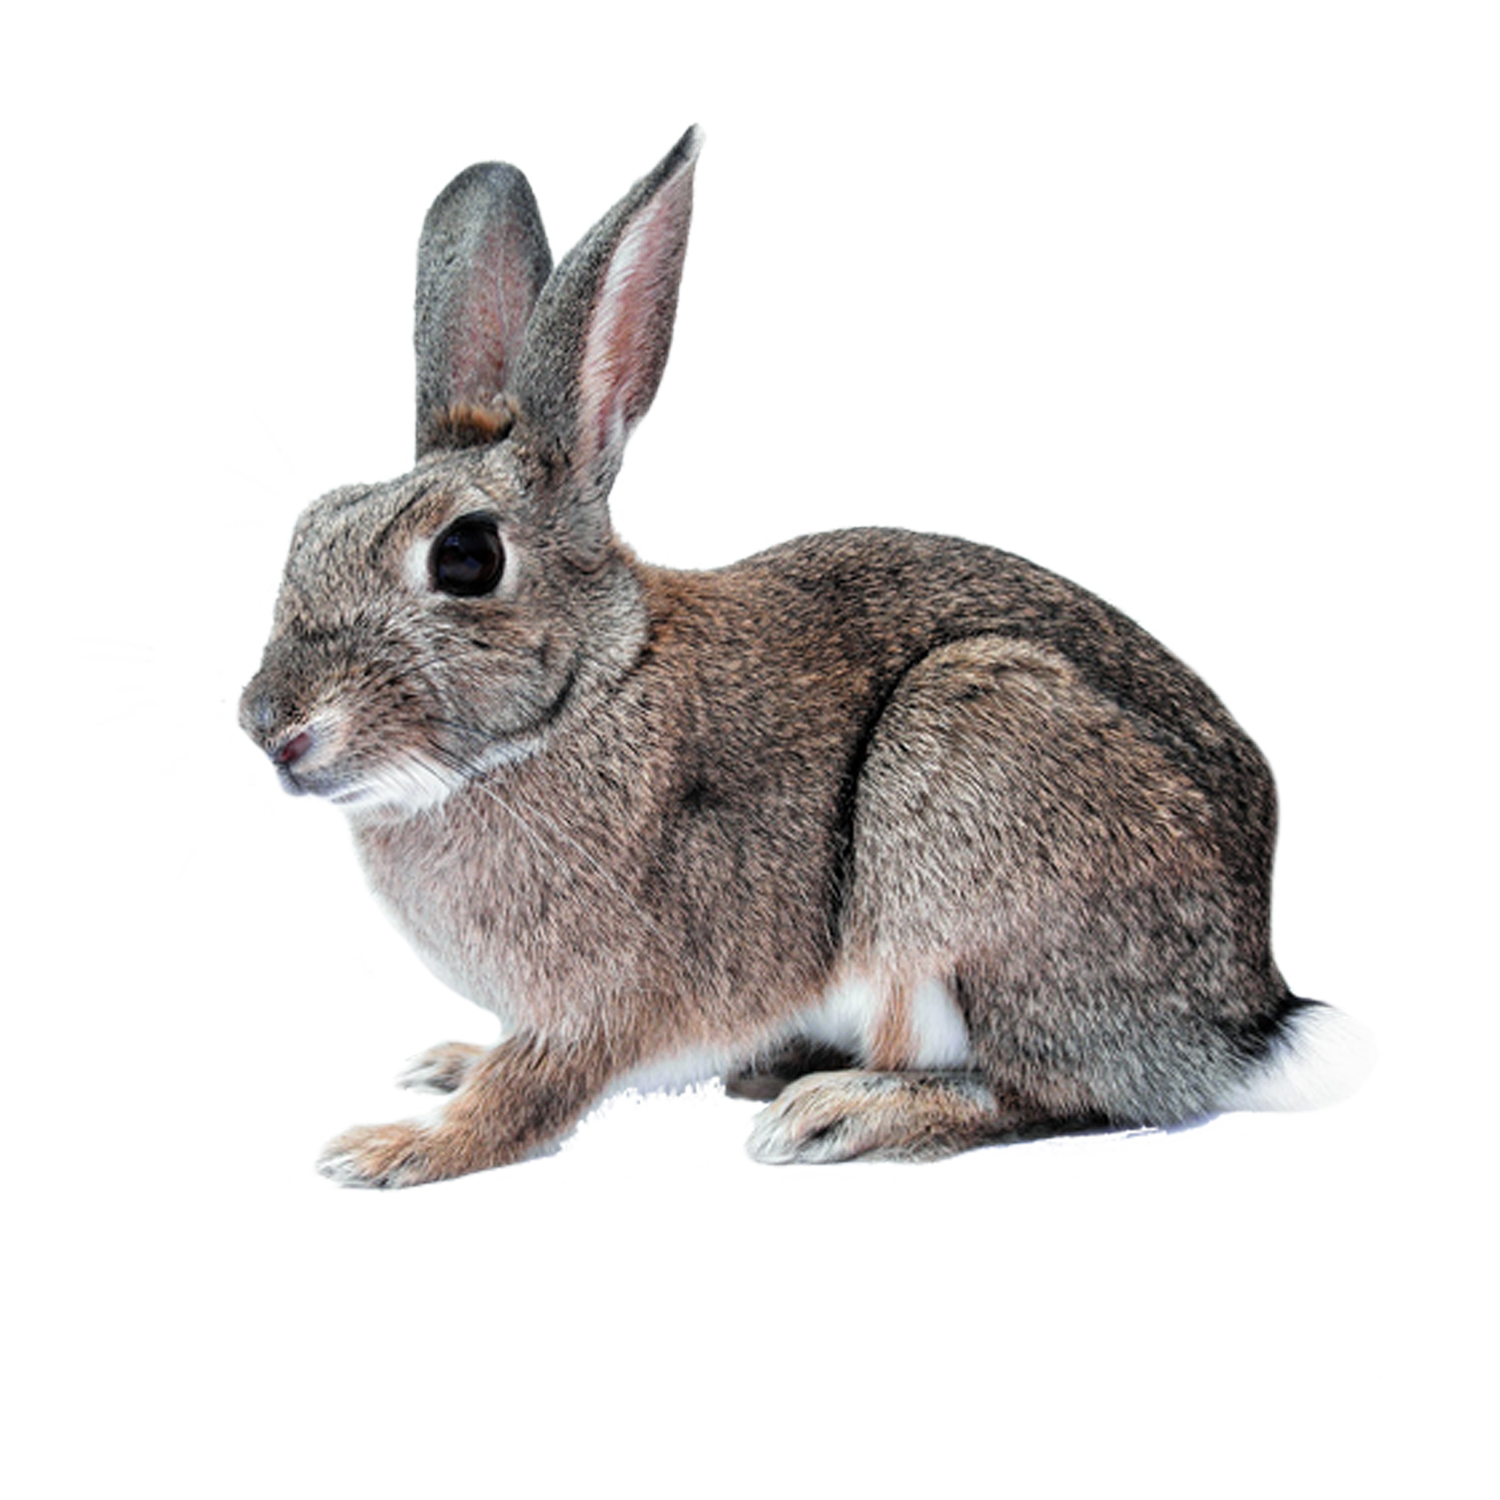 Rabbit Cutout From Public Domain Image Rabbit Pictures Pets Animals